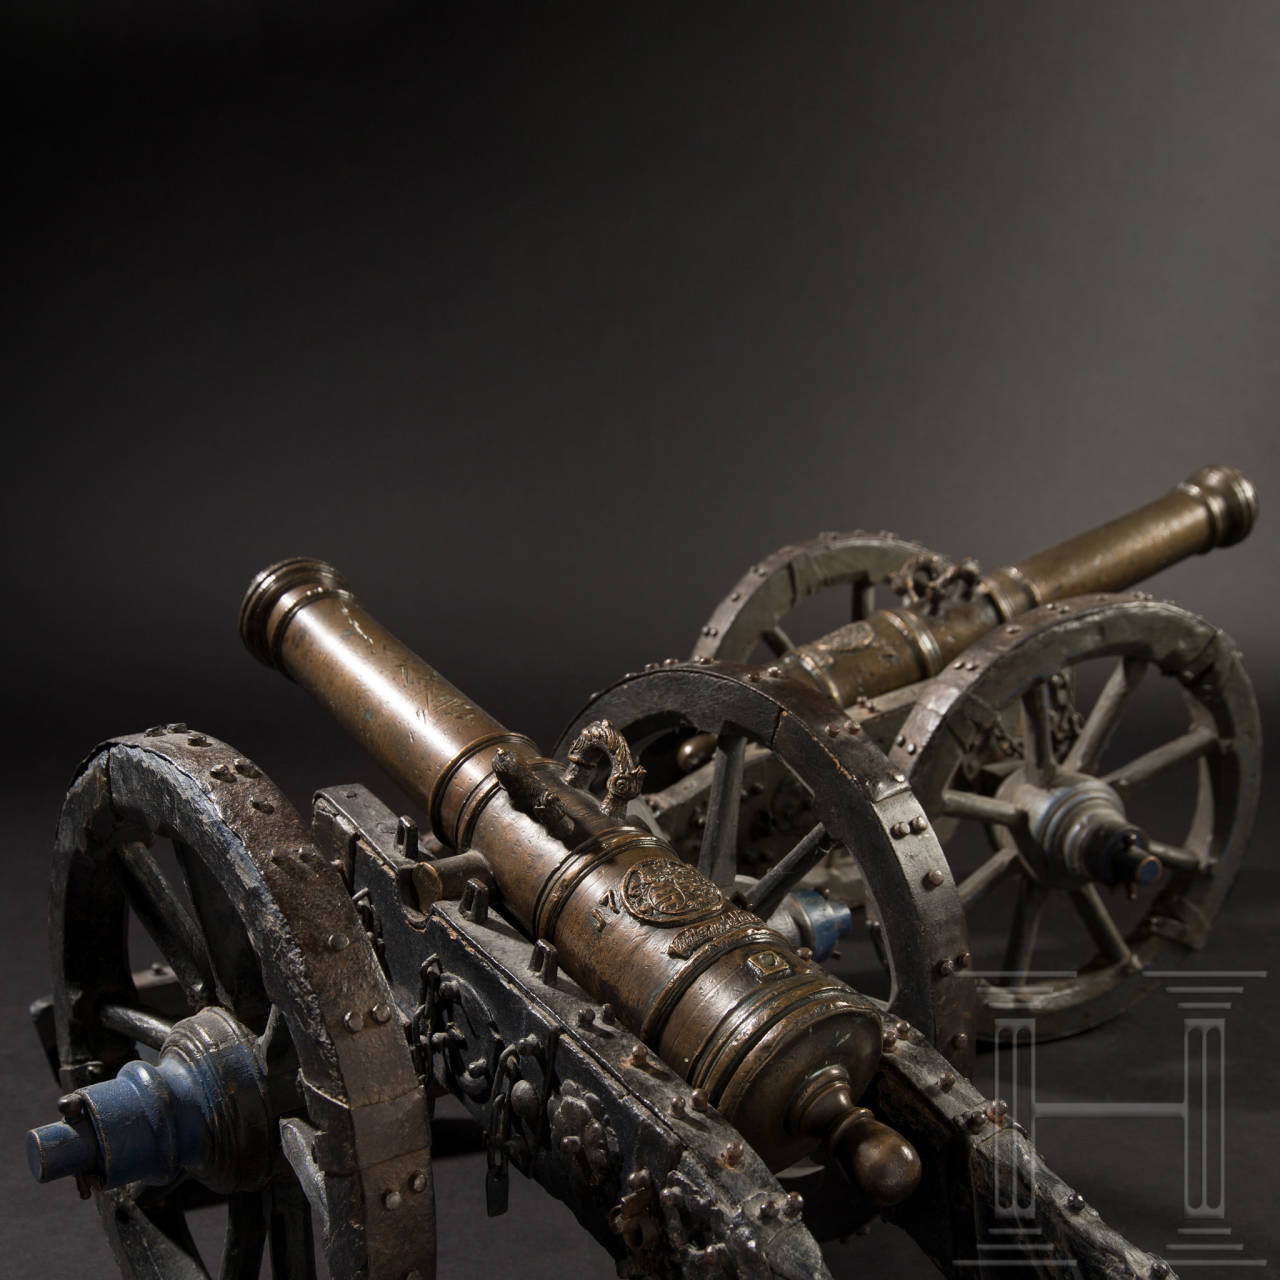 A pair of small German cannons from a noble family, dated 1707